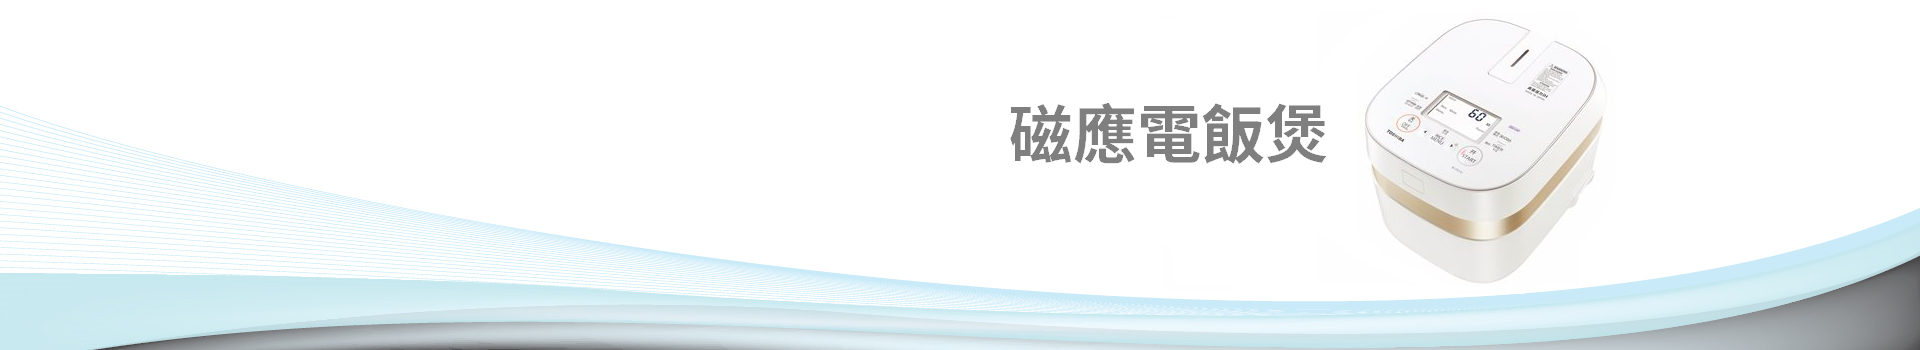 ih rice cooker banner